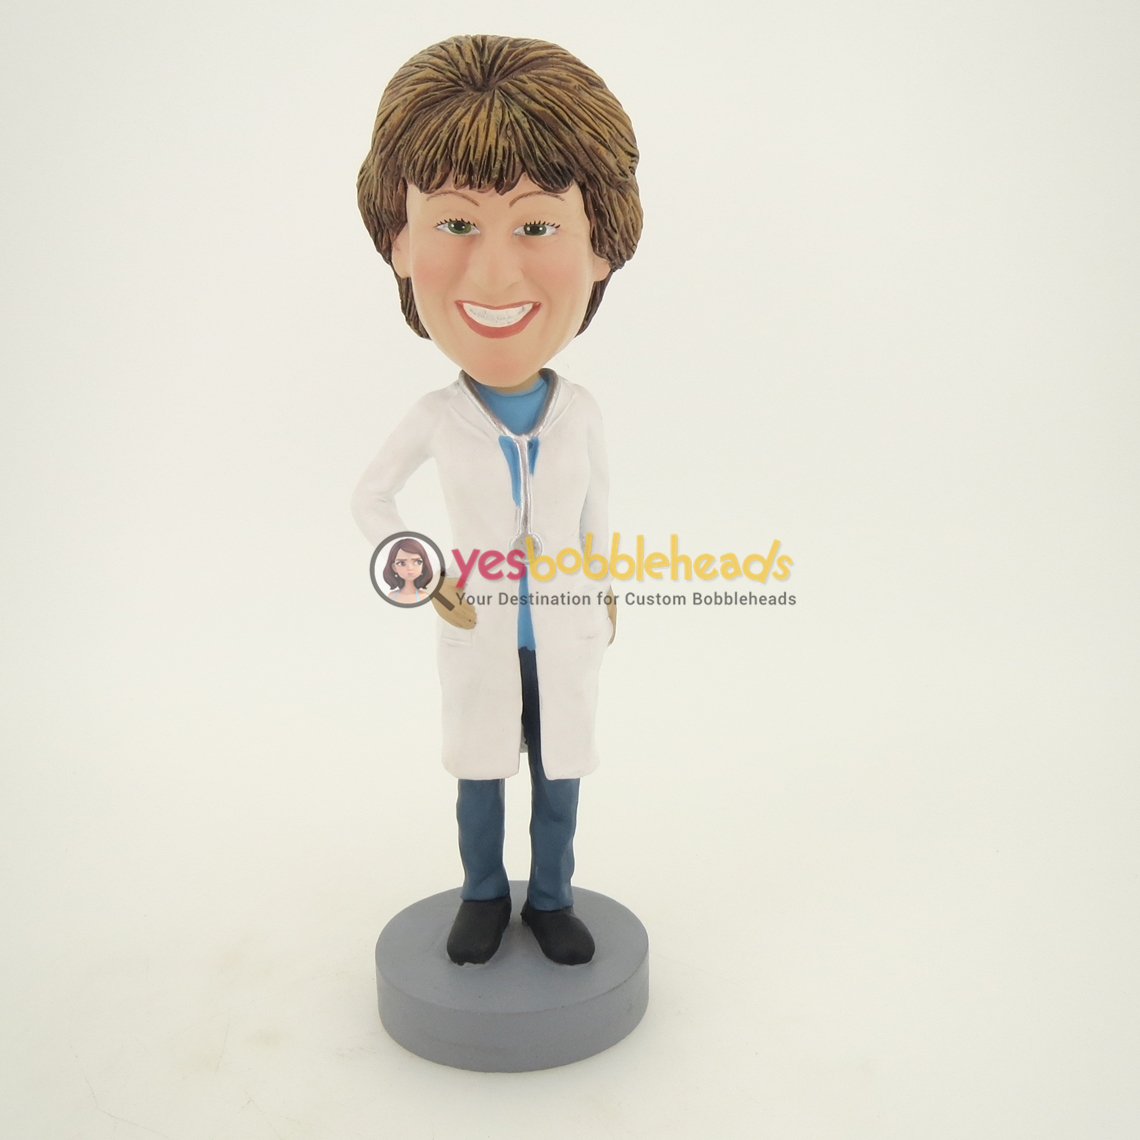 Picture of Custom Bobblehead Doll: Female Doctor with White Gown